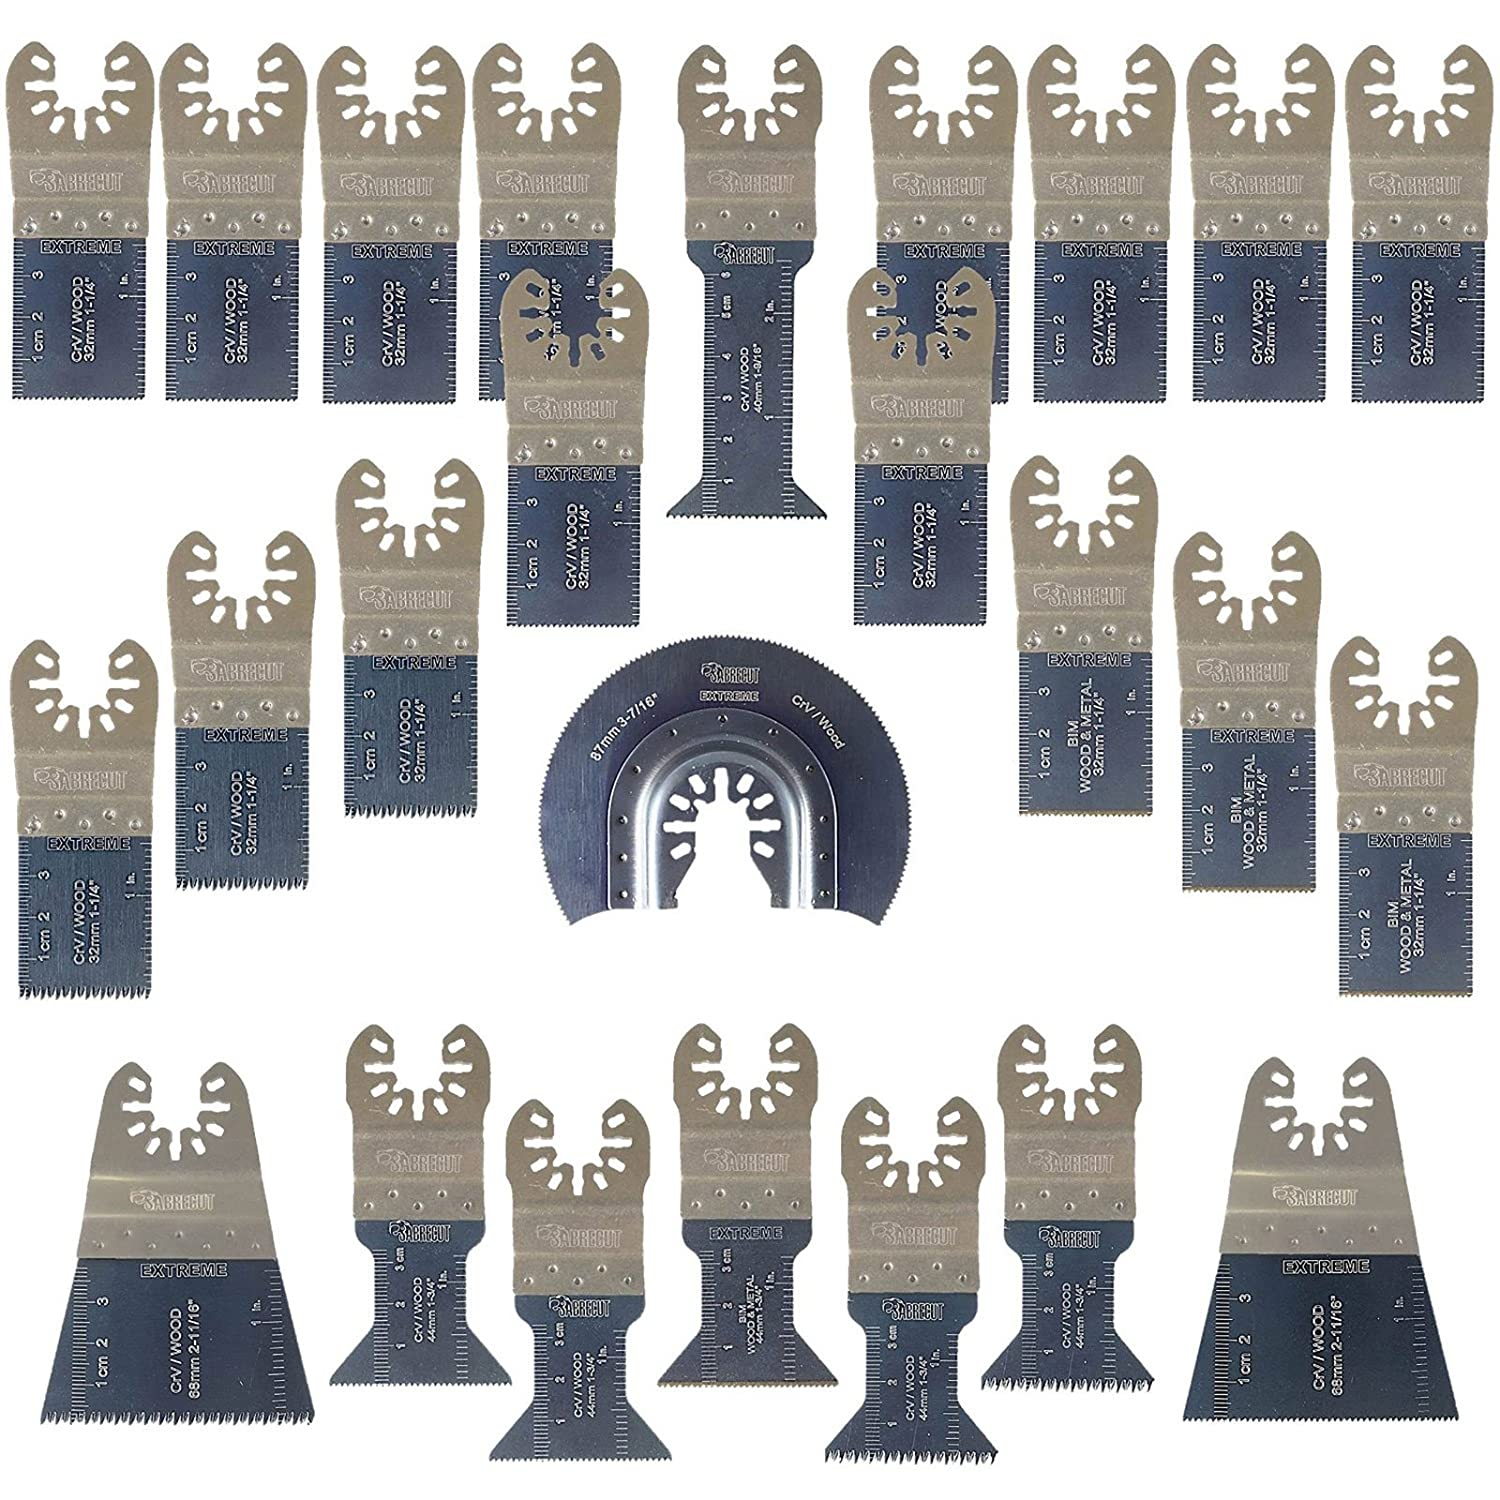 SabreCut 25 x SPK25A Premium Fast Fit OMT Mix Blades for Dewalt Bosch Fein Makita Milwaukee Craftsman Chicago Ridgid Ryobi Rockwell (HyperLock) Porter Cable Multi Tool Accessories